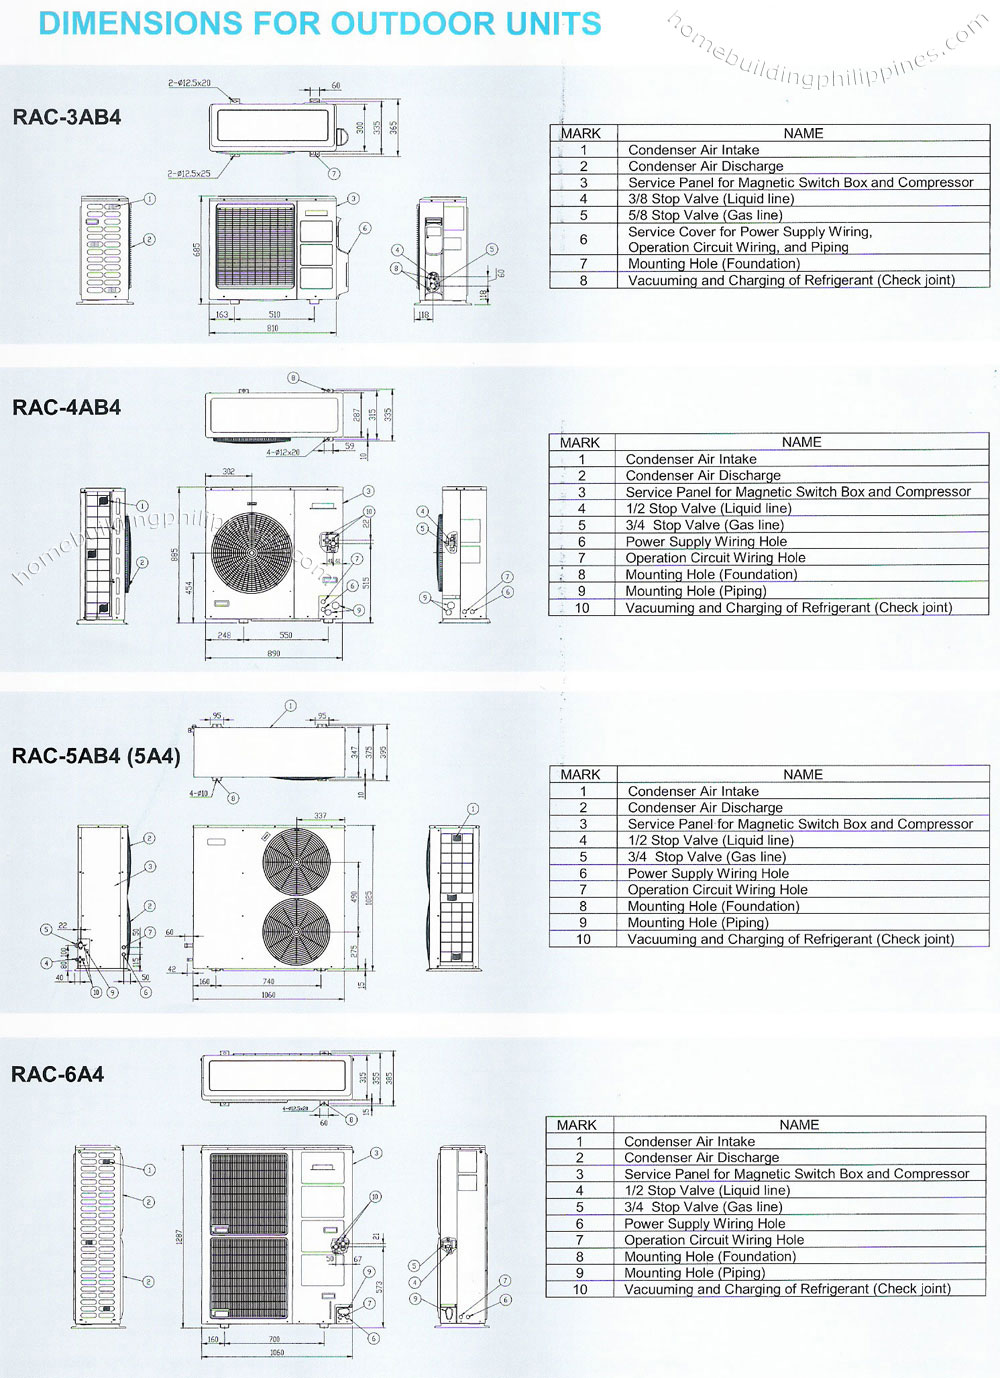 Dimensions For Outdoor Units Slim Type Packaged Air